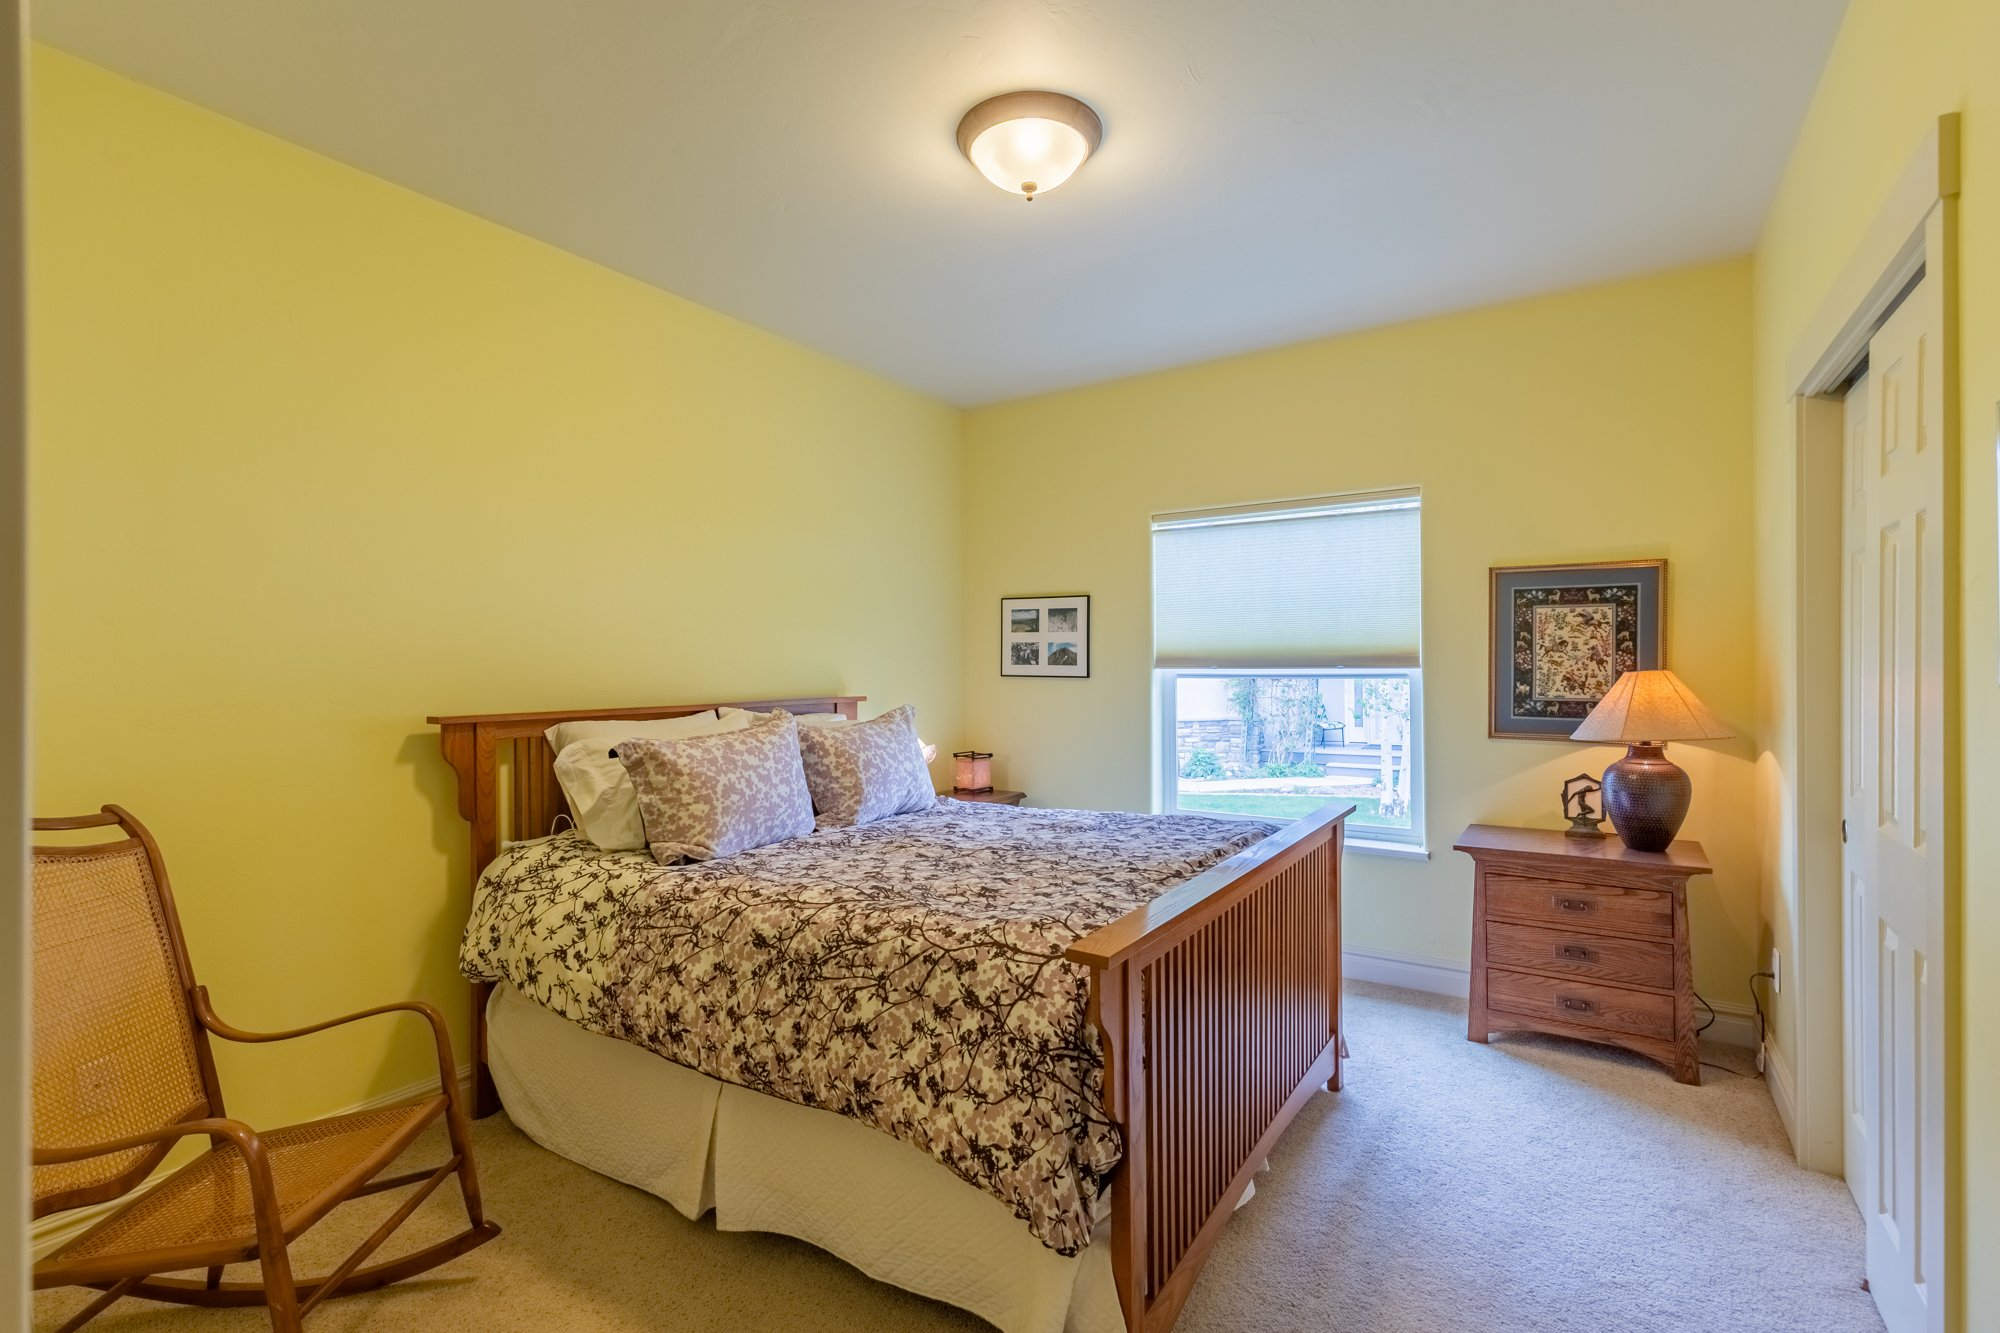 Bedroom with Window - 640 Badger Court Montrose, CO 81403 - Atha Team Real Estate Agents